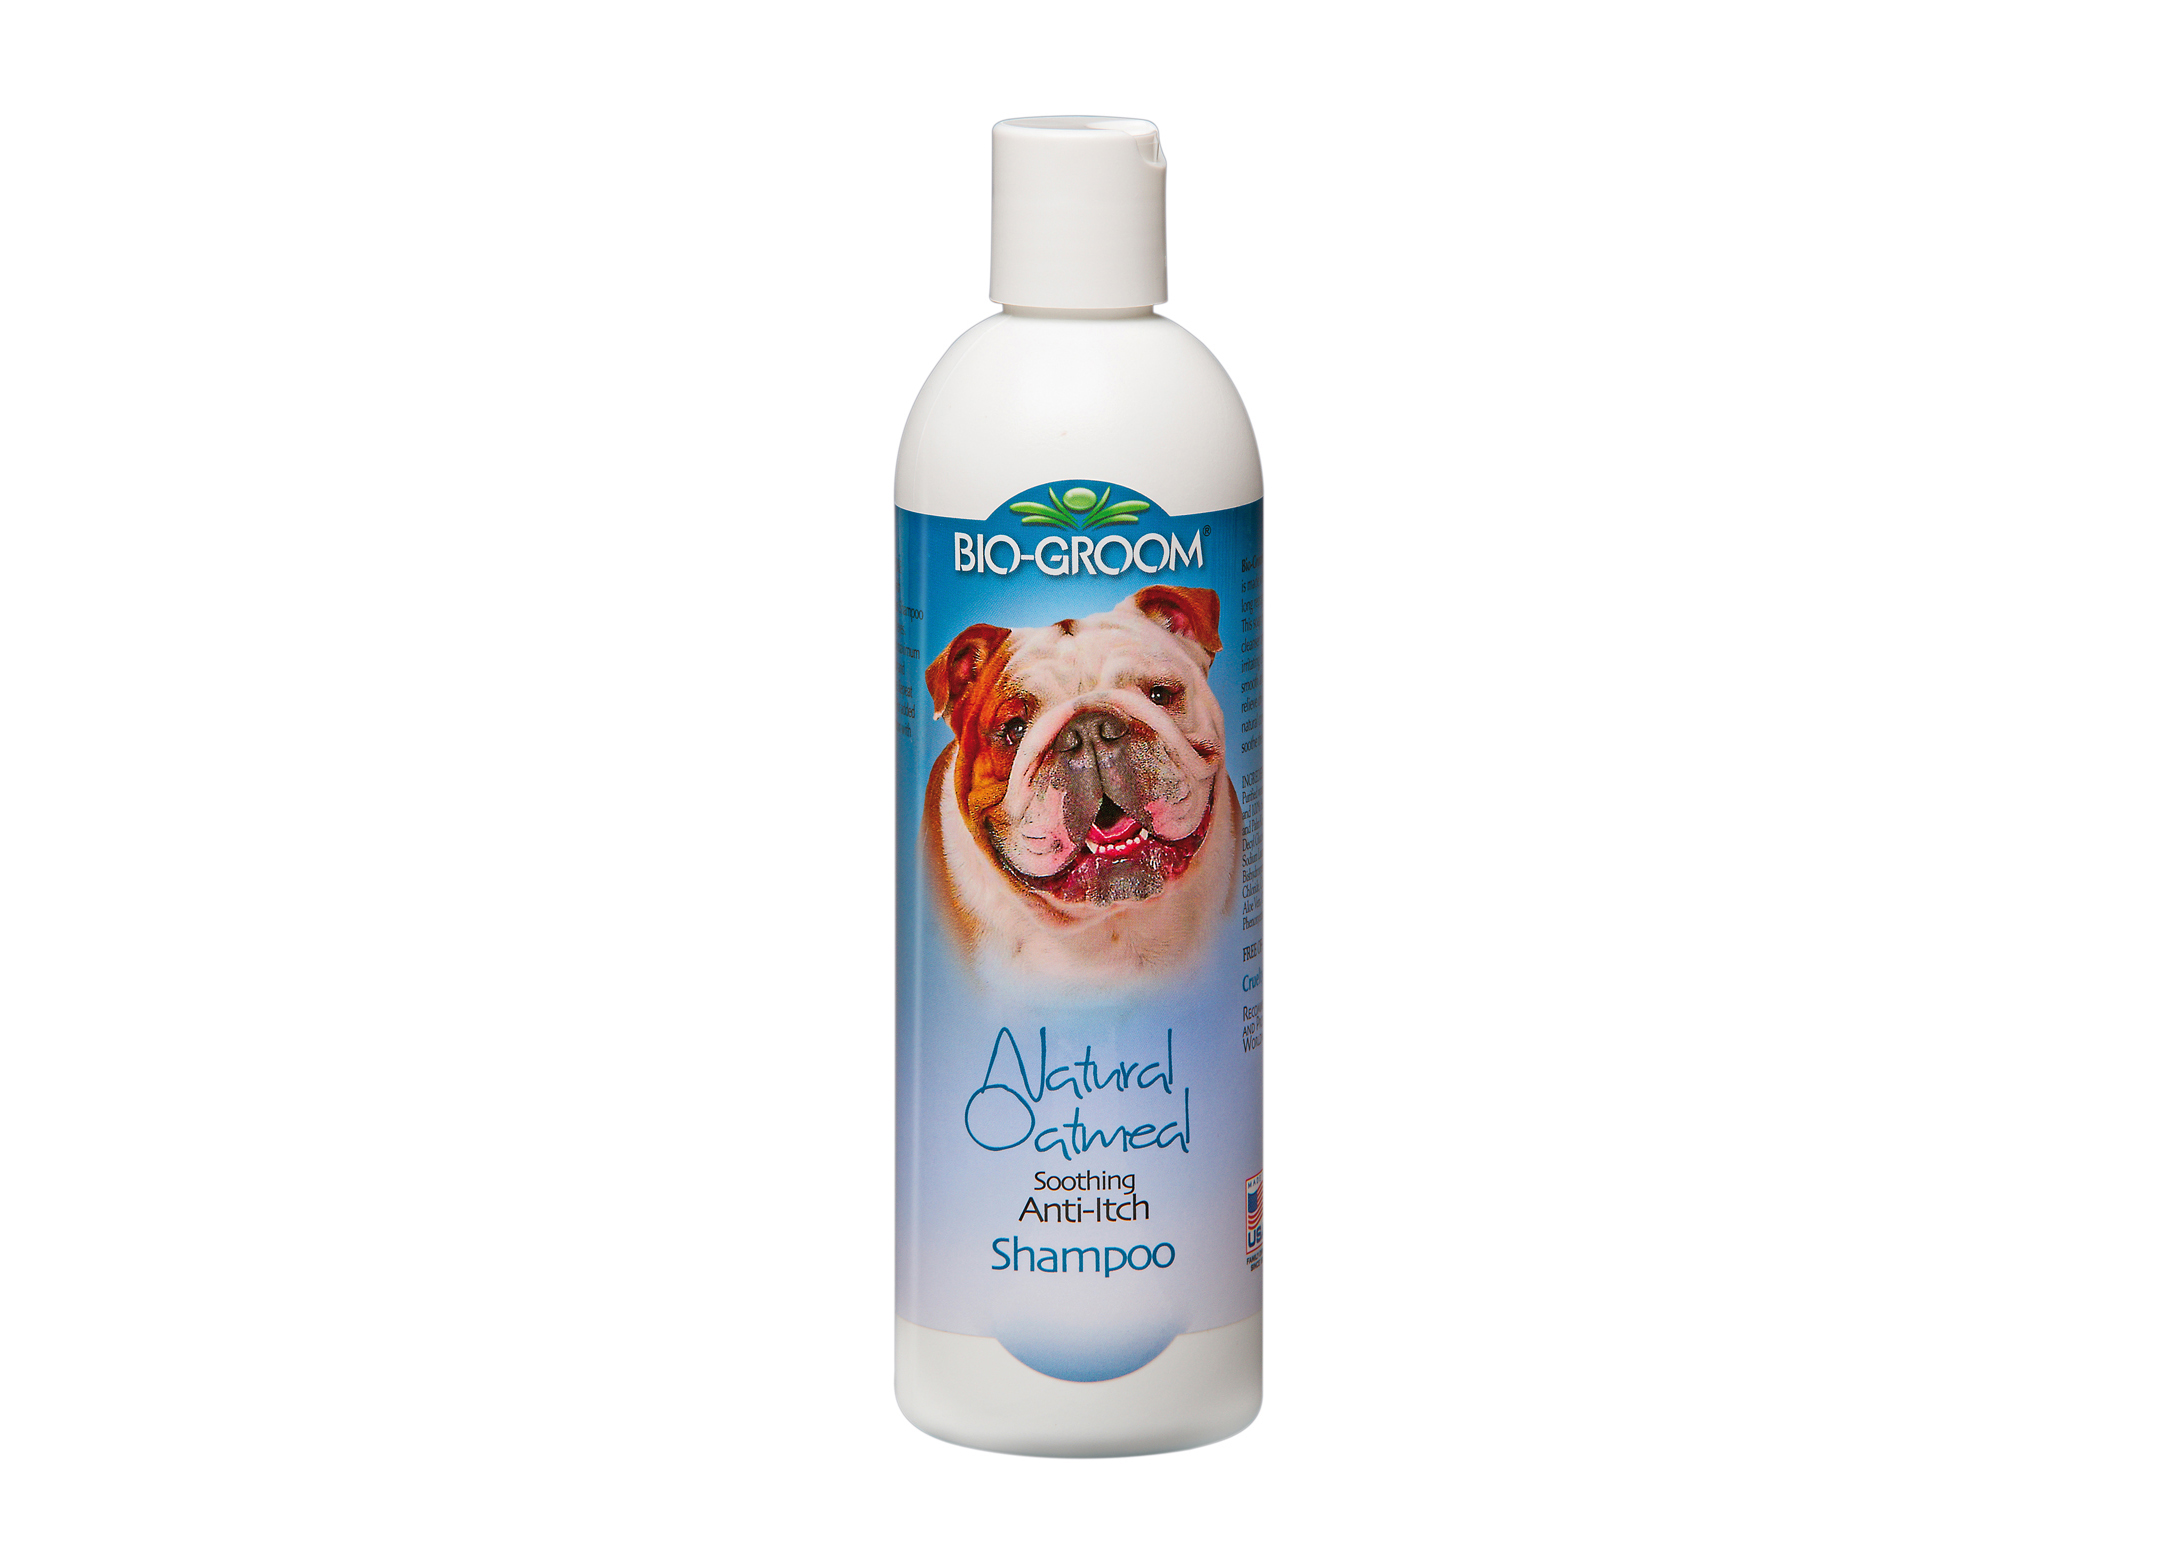 Bio Groom Natural Oatmeal Shampoo For Dogs, Cats And Horses